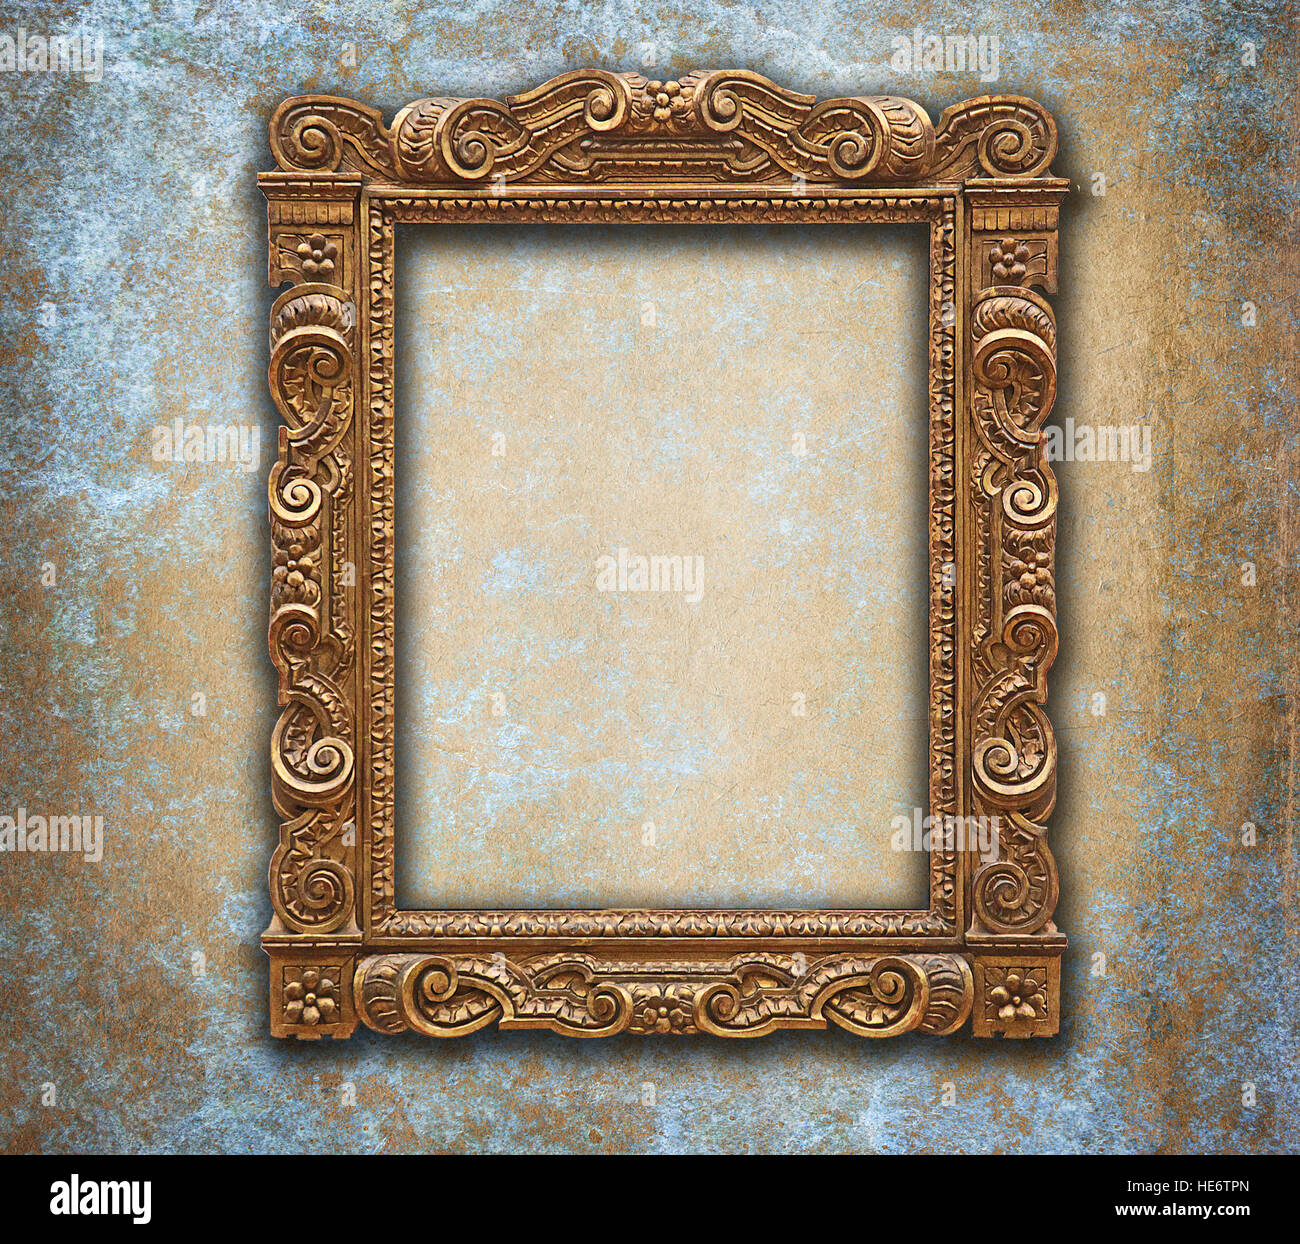 empty golden baroque frame on grunge blue and orange wall stock